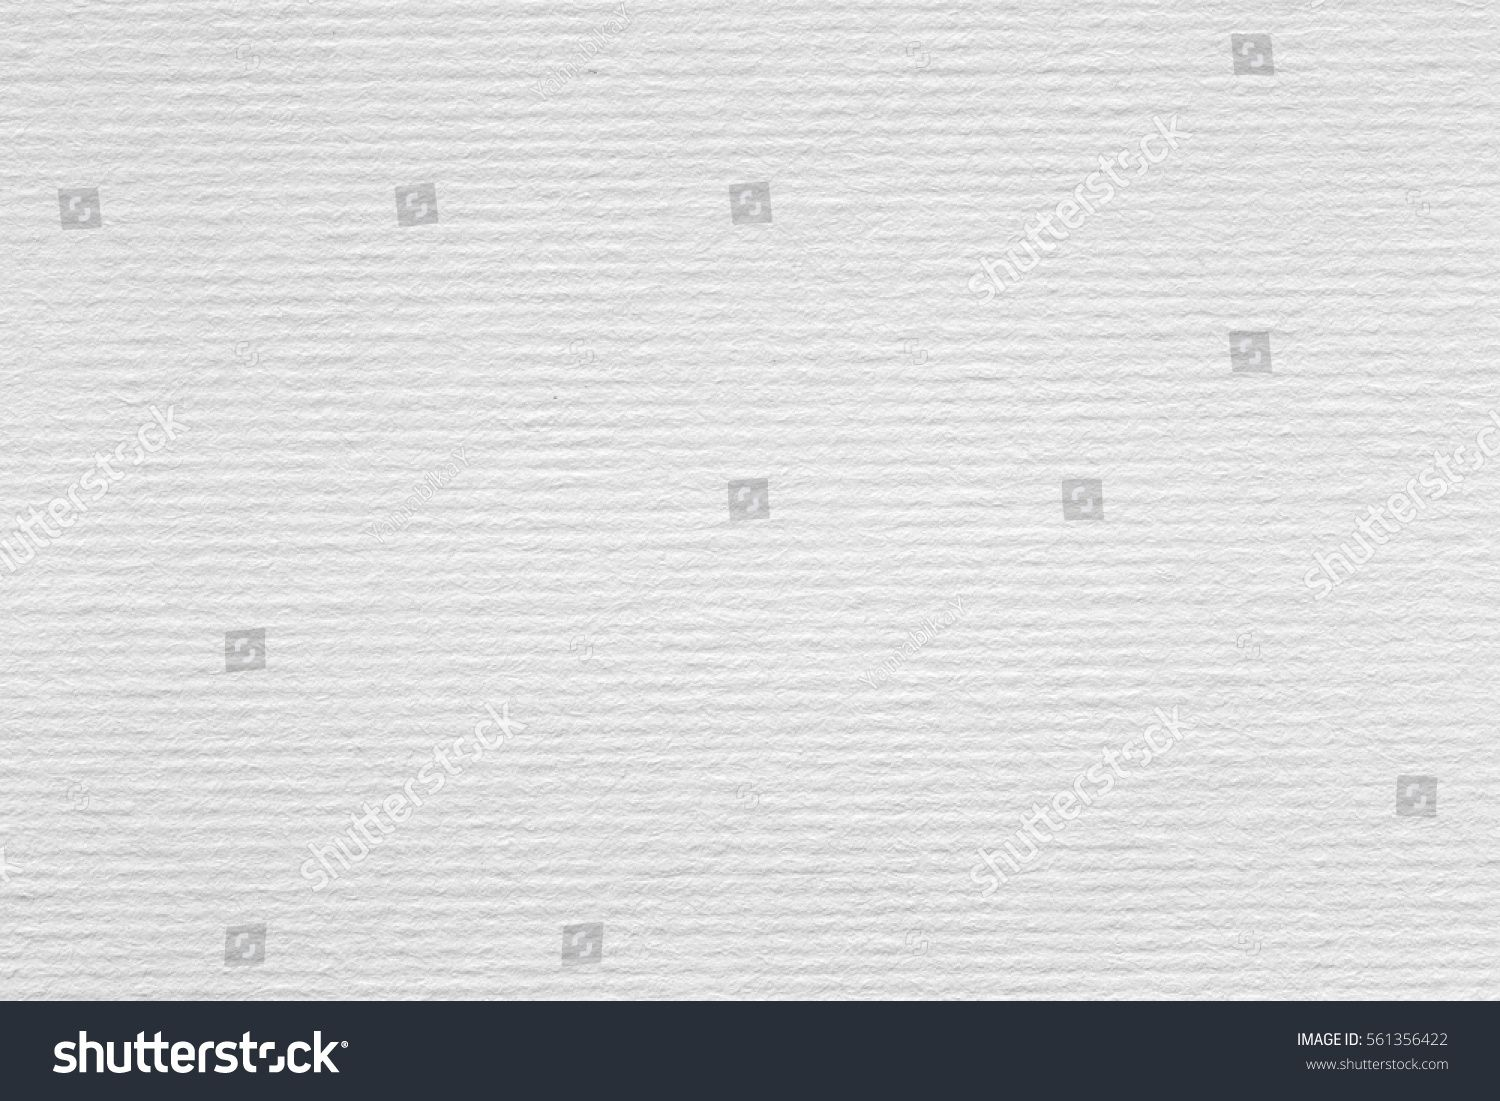 A Rough Texture Background Of White Watercolour Paper High